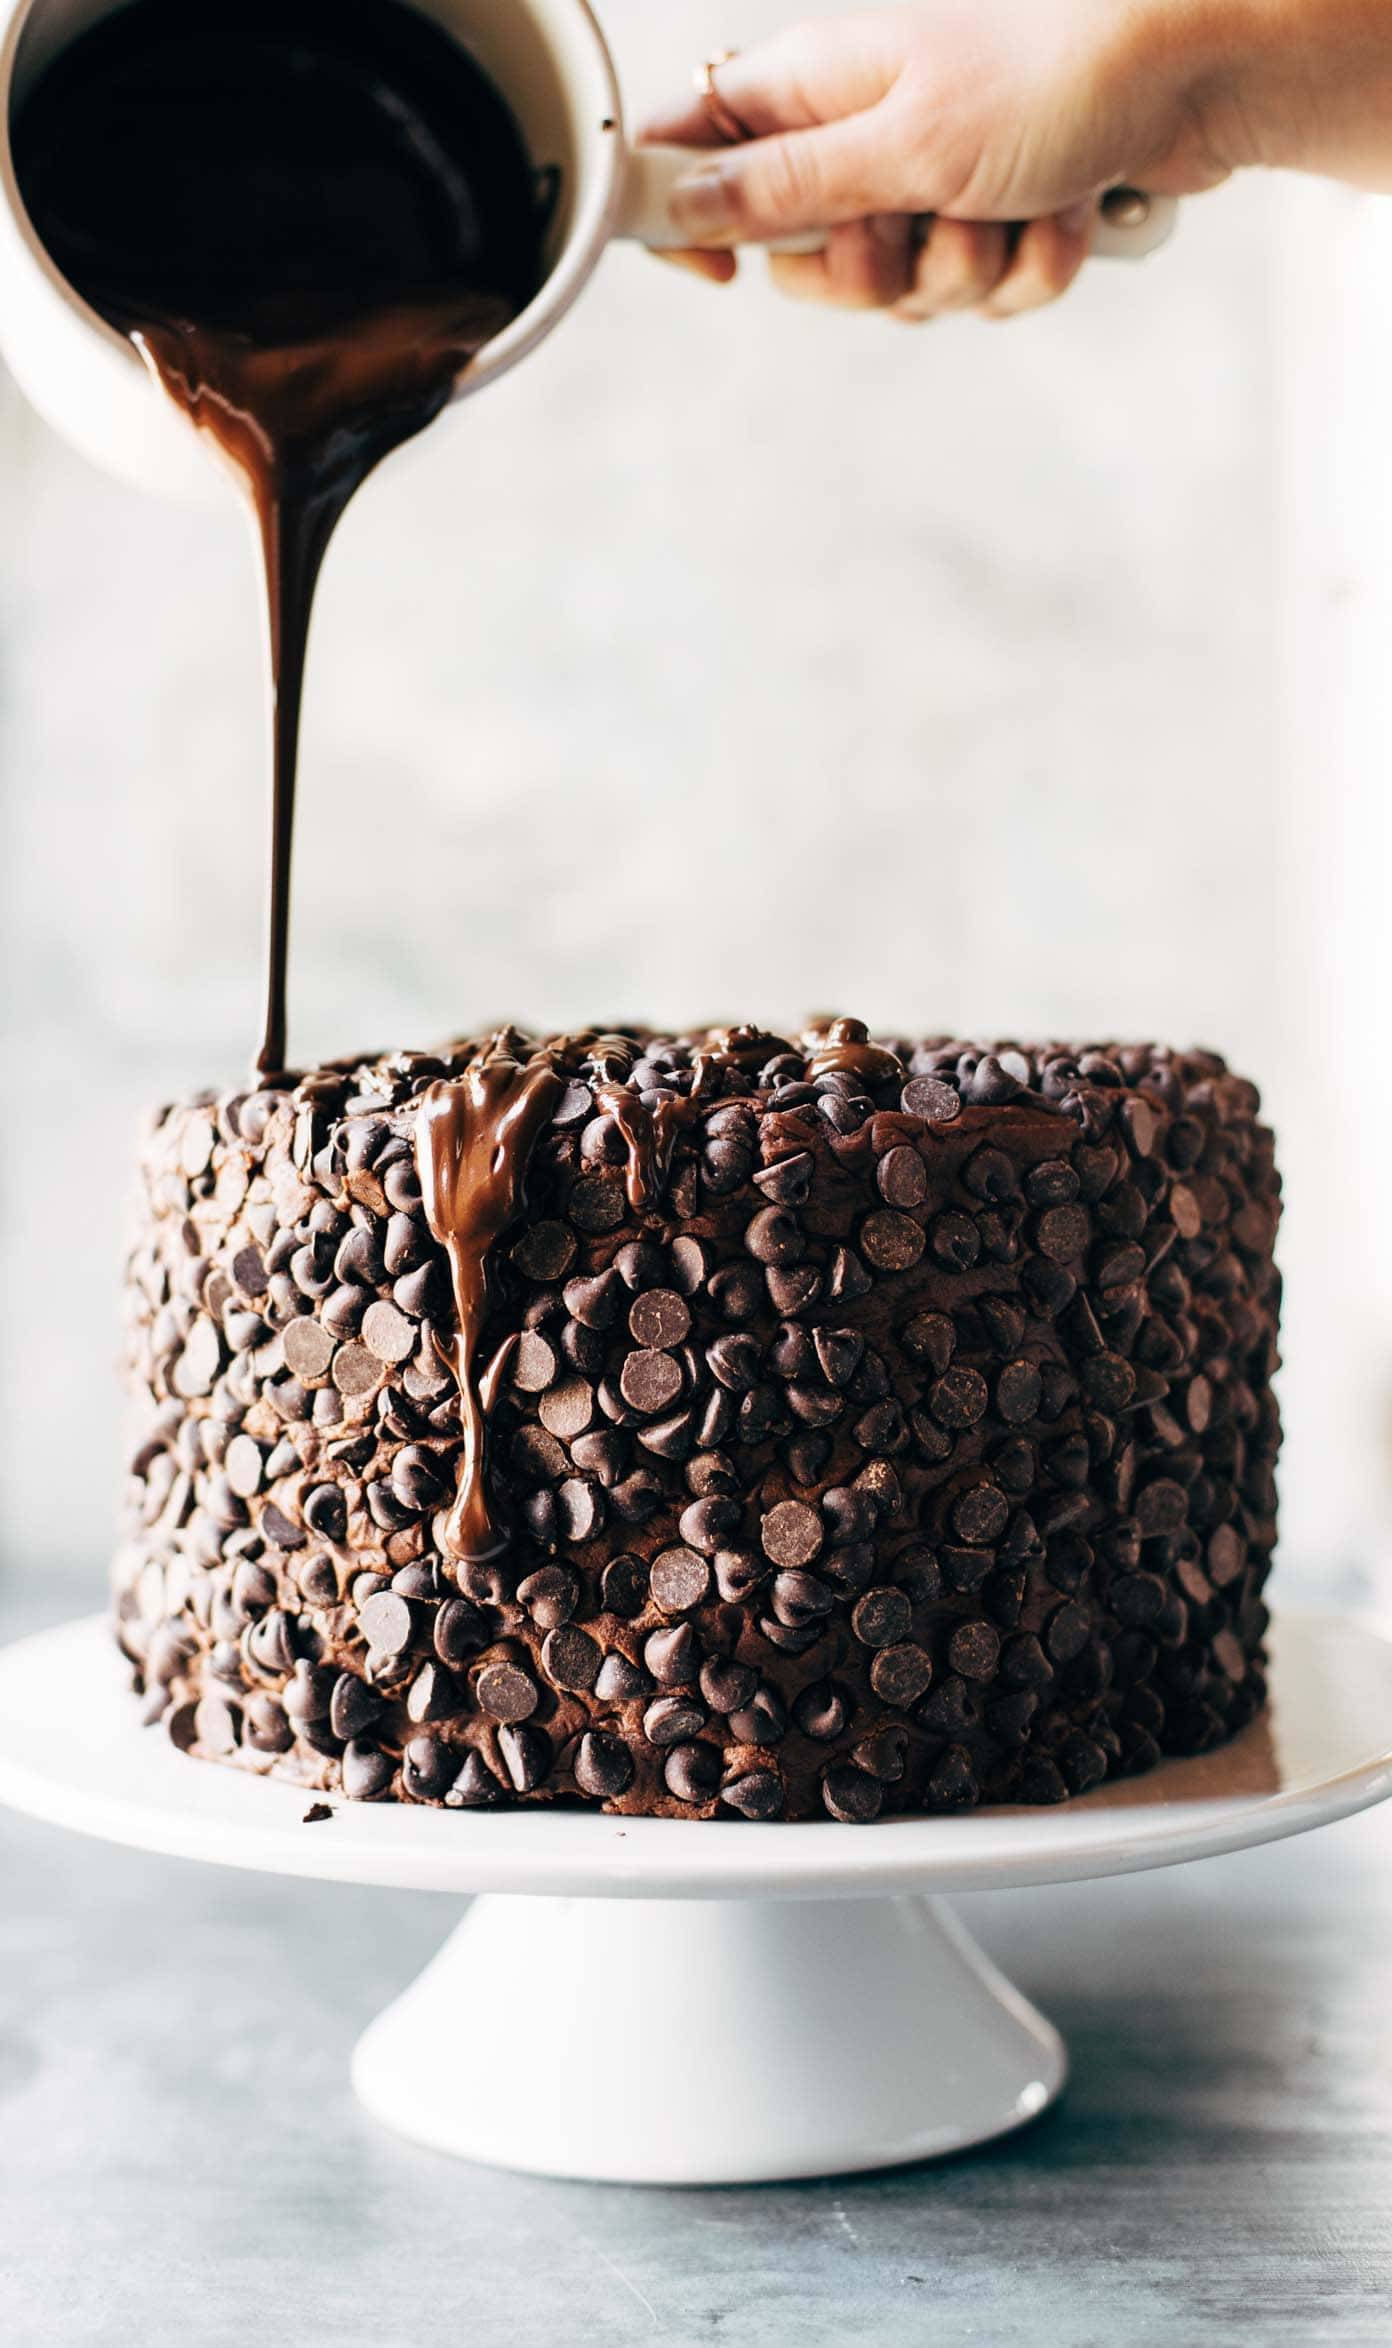 Chocolate Cake Recipe And Procedure